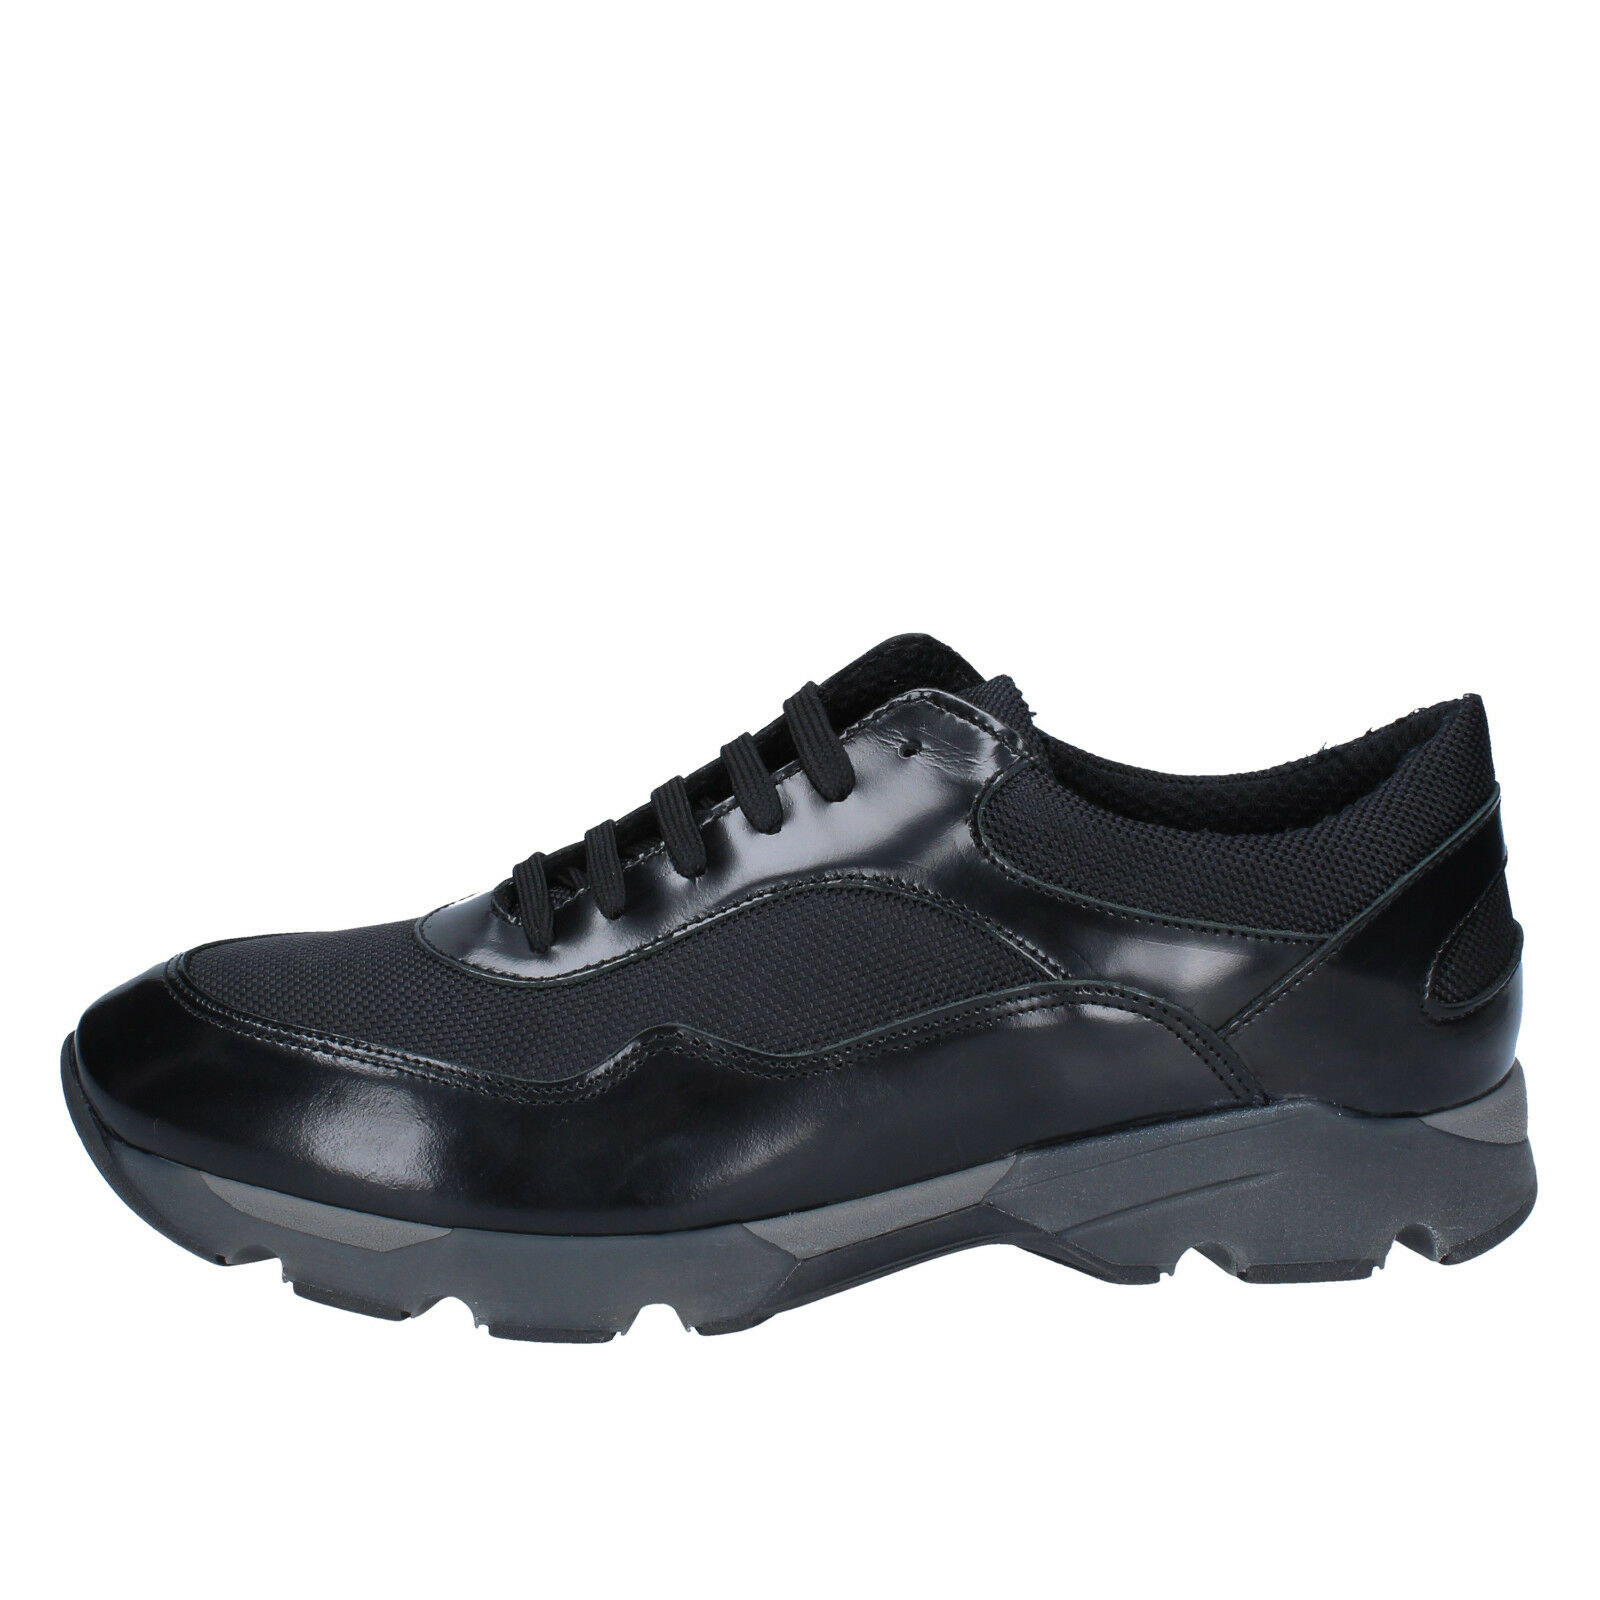 men's shoes BALDININI 9 () sneakers black leather textile BY537-42